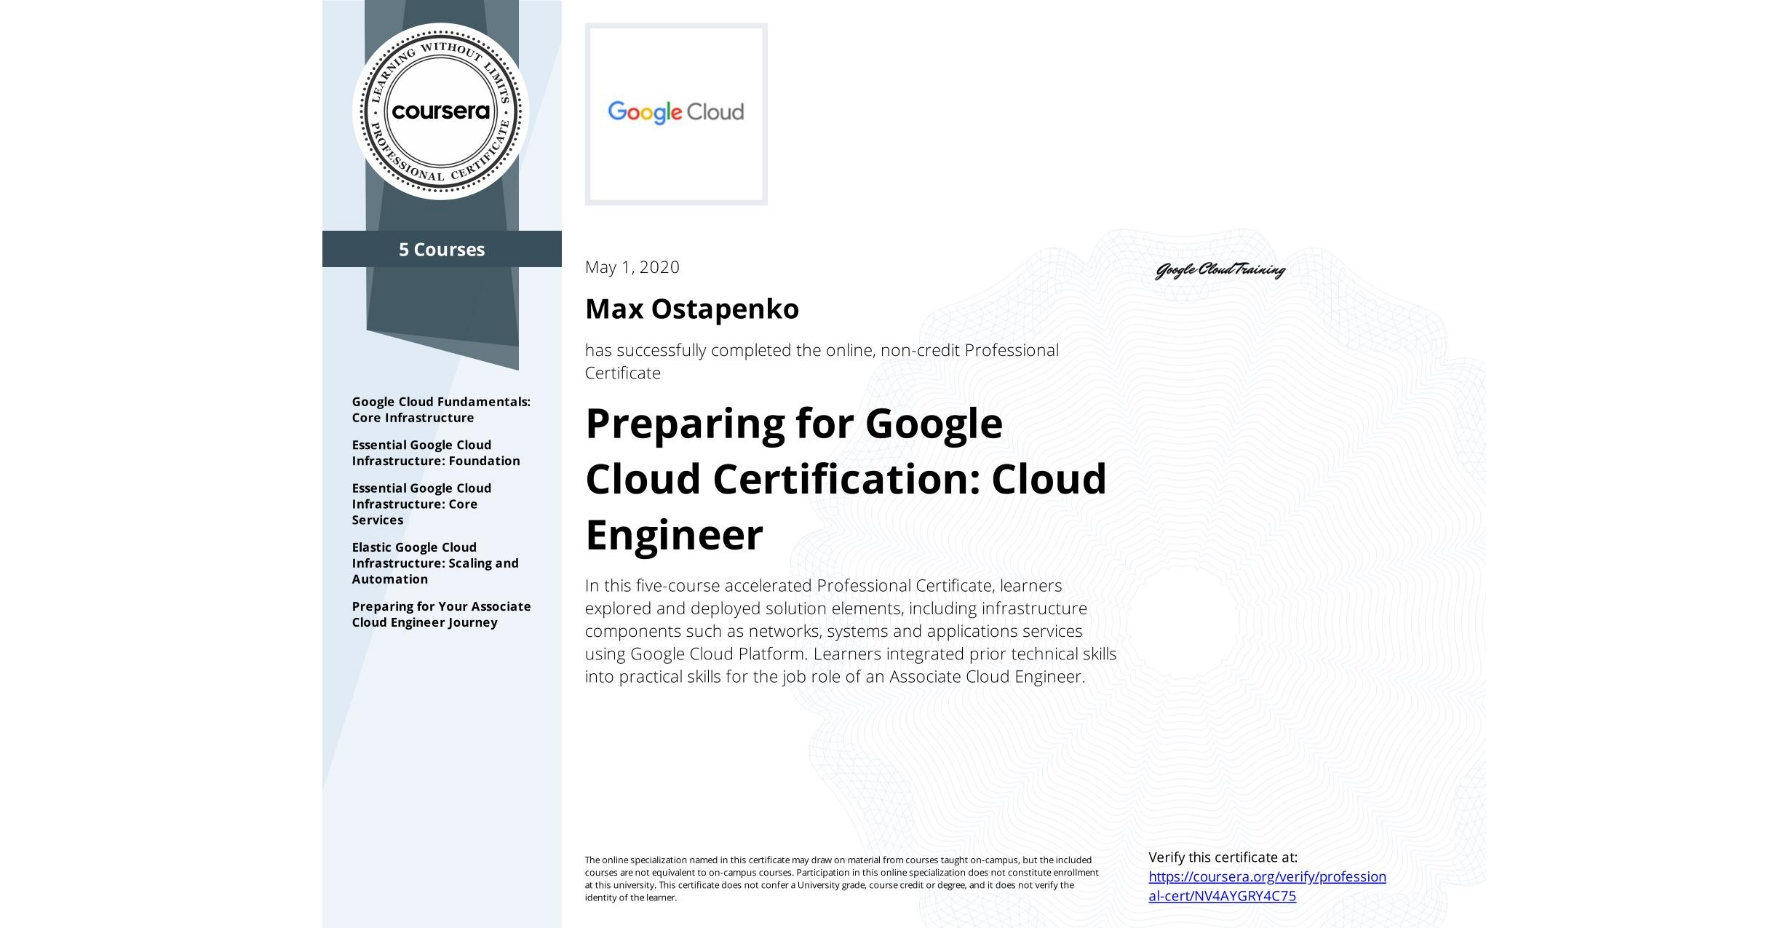 View certificate for Max Ostapenko, Preparing for Google Cloud Certification: Cloud Engineer, offered through Coursera. In this five-course accelerated Professional Certificate, learners explored and deployed solution elements, including infrastructure components such as networks, systems and applications services using Google Cloud Platform. Learners integrated prior technical skills into practical skills for the job role of an Associate Cloud Engineer.